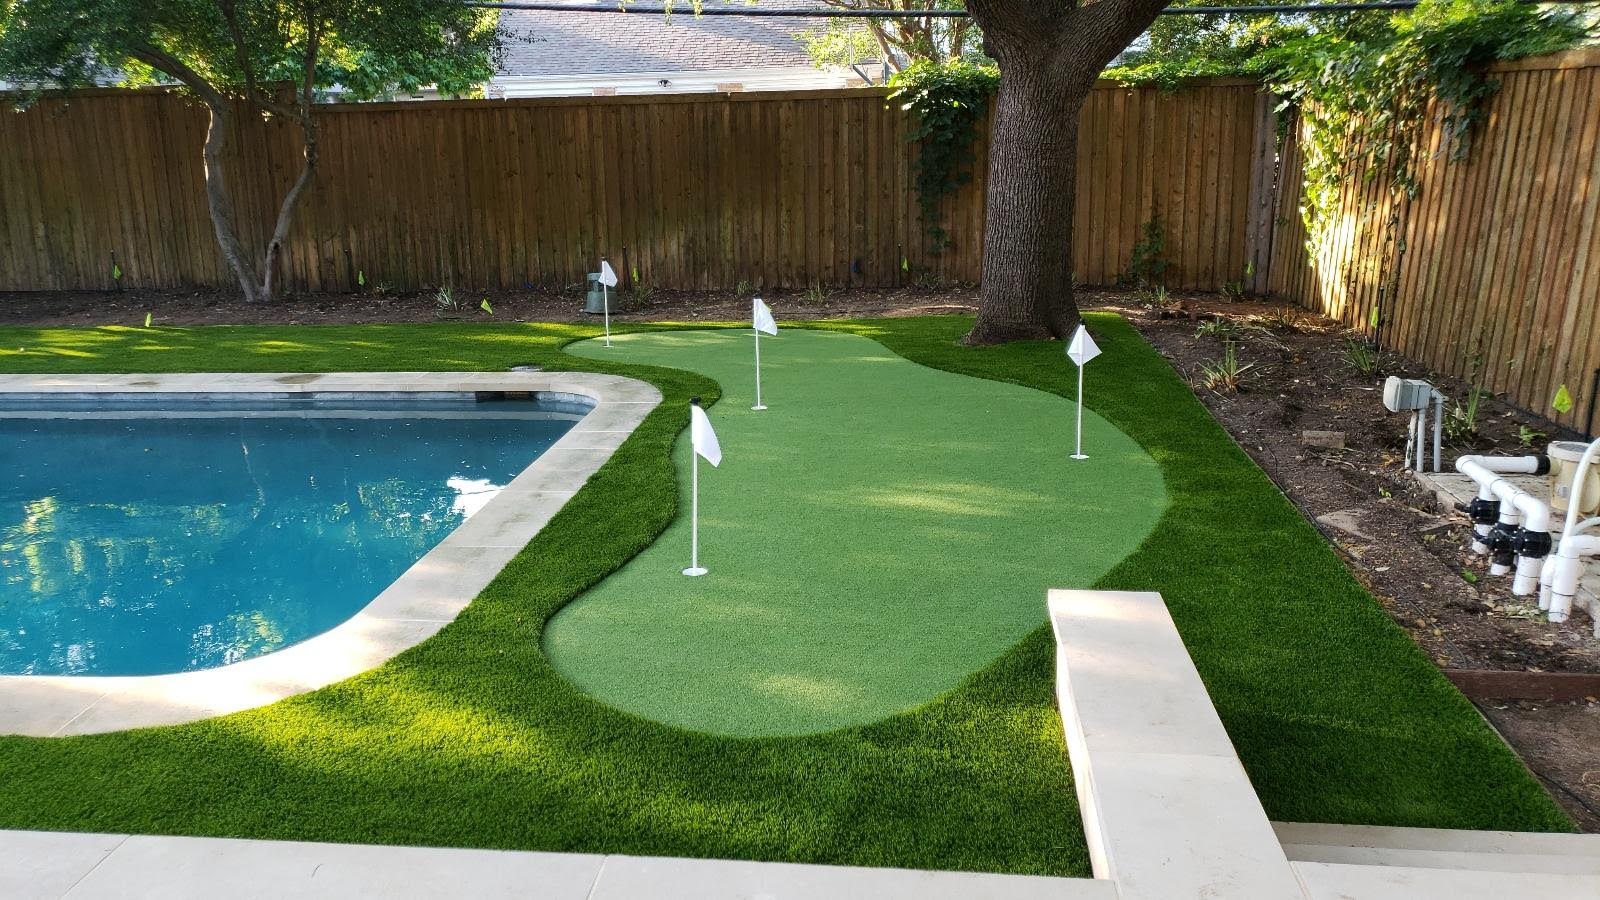 Backyard Putting Green | Synthetic Grass for Home and Mini Golf Greens